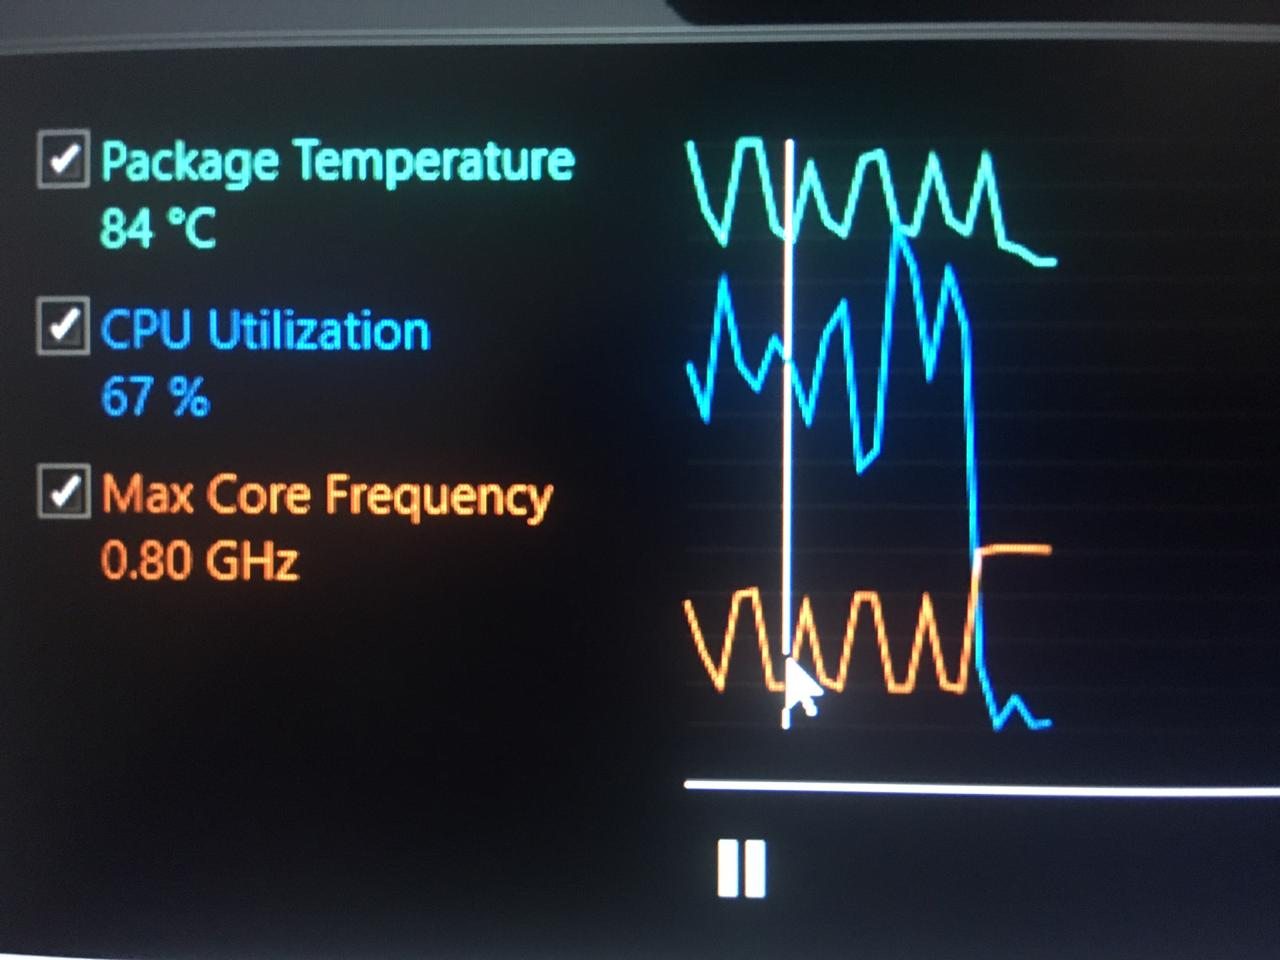 Power Limit Throttling in Dell 7577 - Laptops and Pre-Built Systems